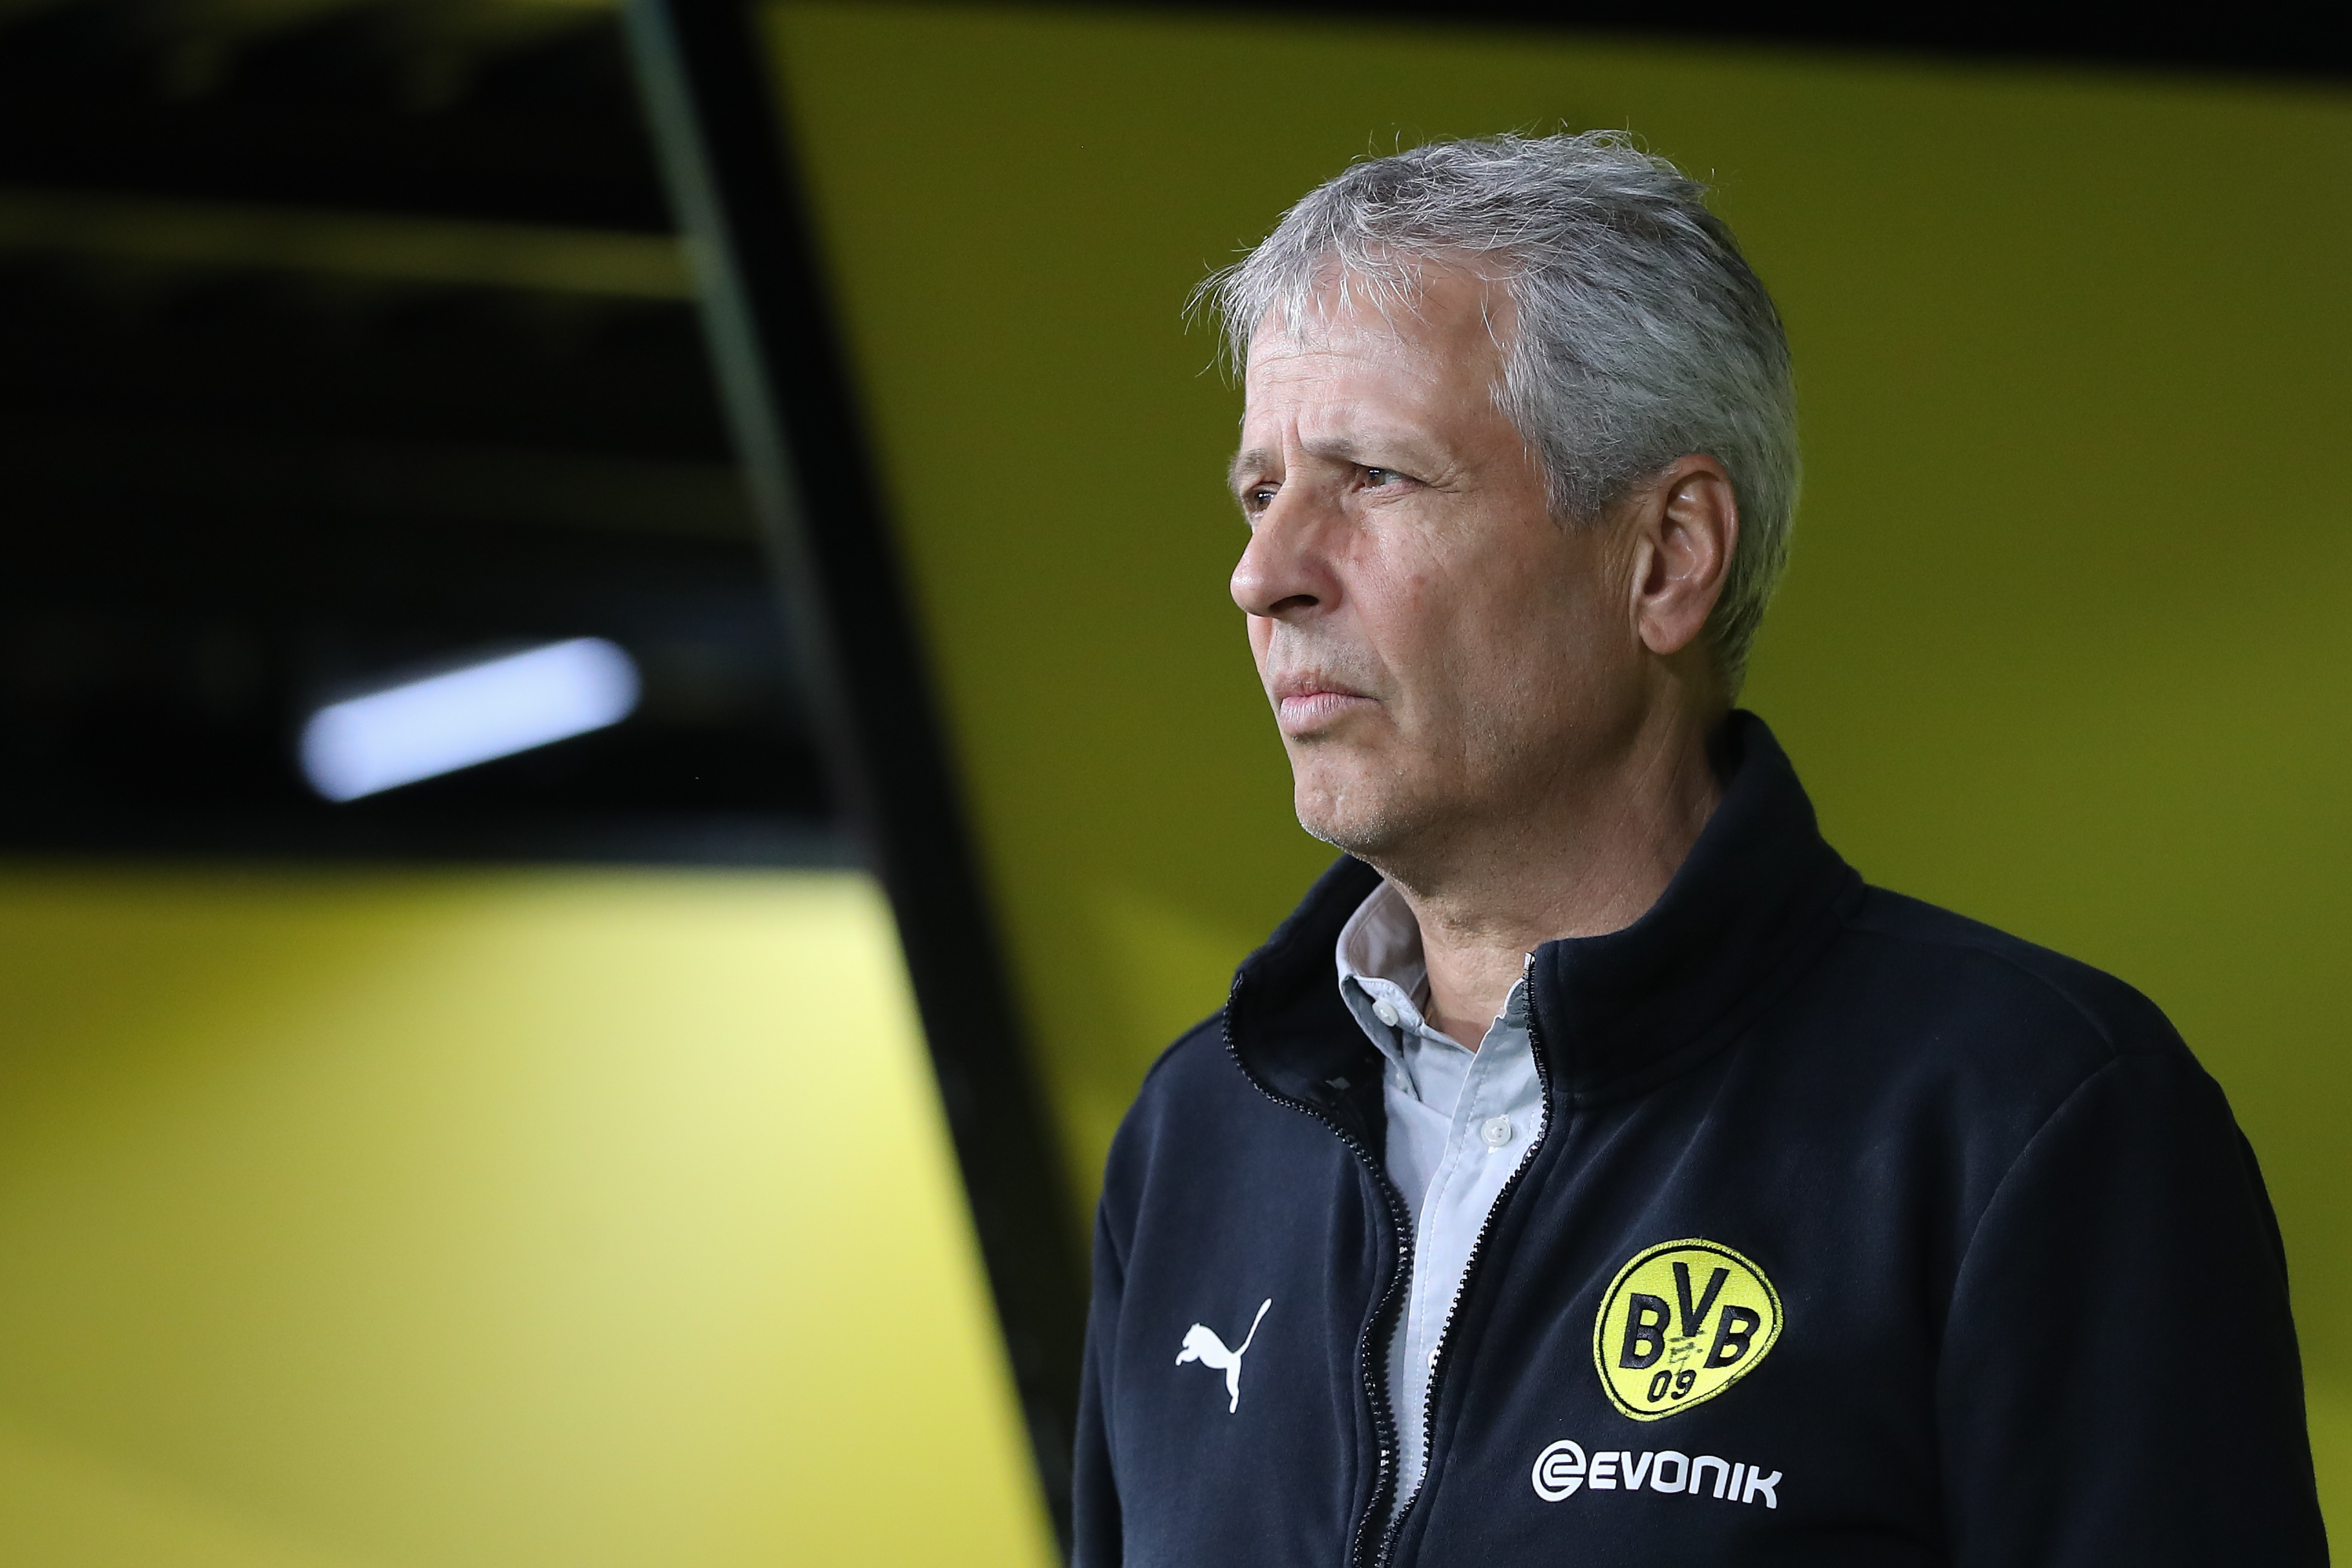 Borussia Dortmund host FC Schalke in theRevierderby - Can Favre guide his team to a victory?